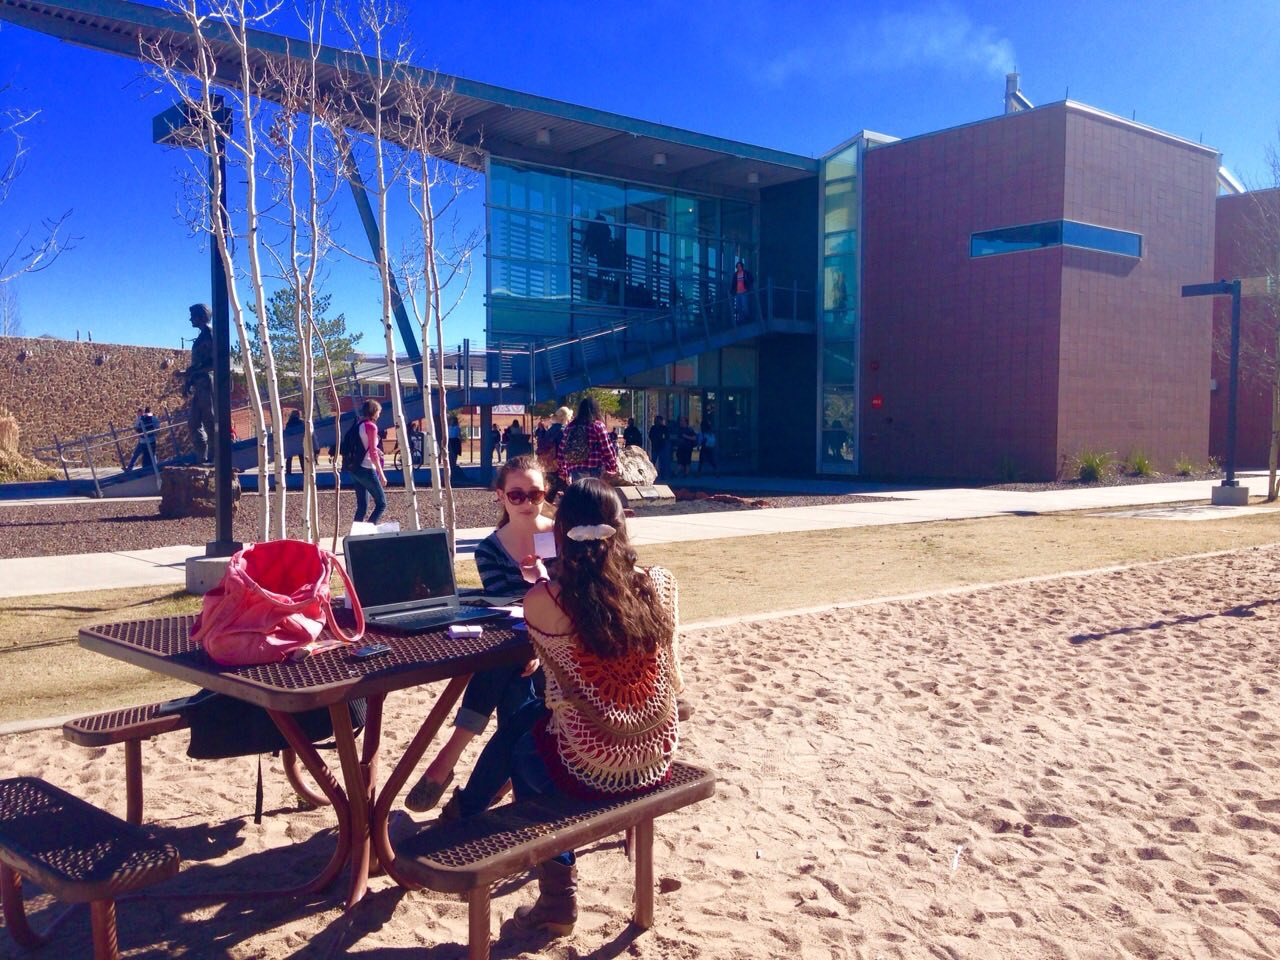 Students study outside the Union